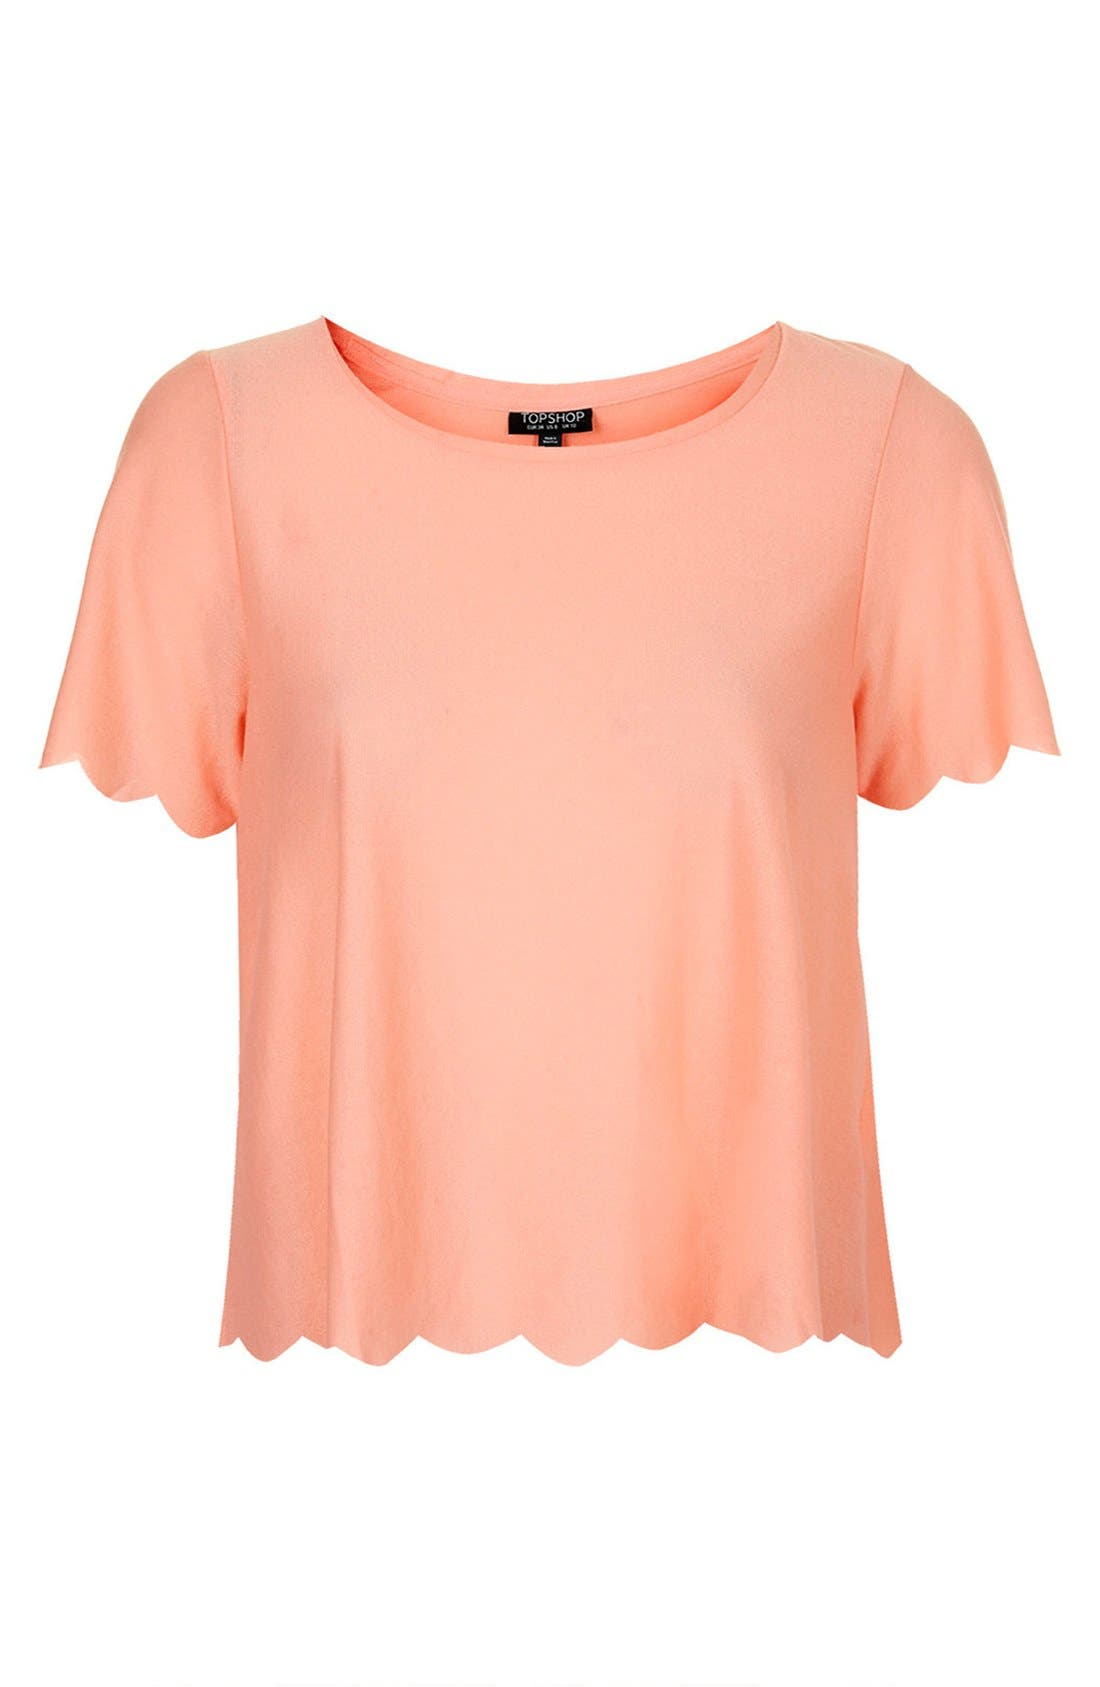 Scallop Frill Tee,                             Alternate thumbnail 33, color,